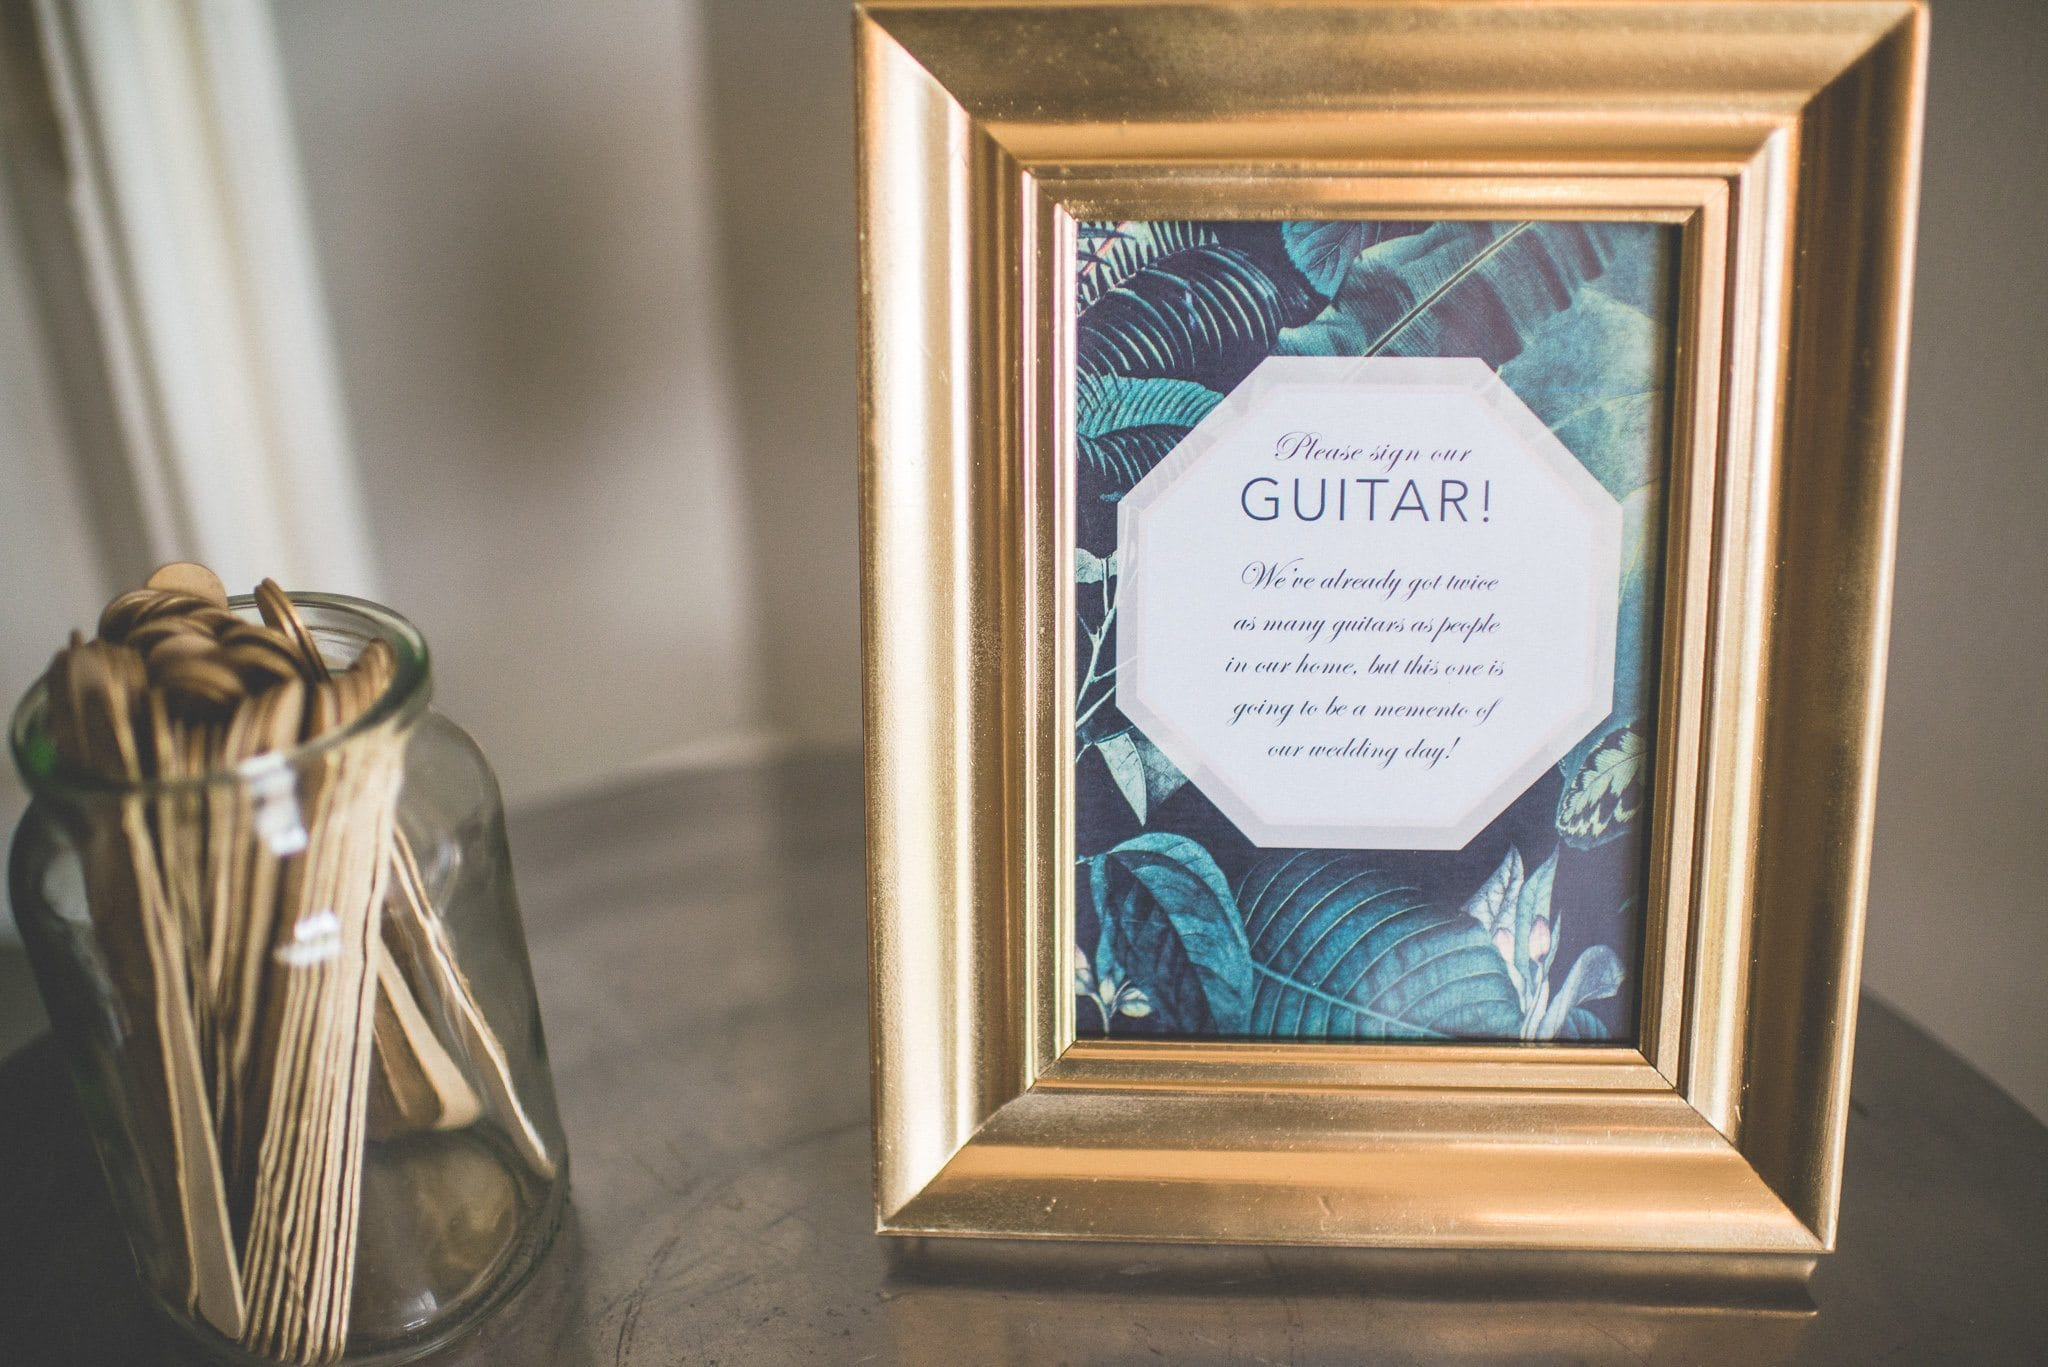 A framed instruction for guests - Sign Our Guitar! - shows Jasmin and Andy's musical take on a guestbook